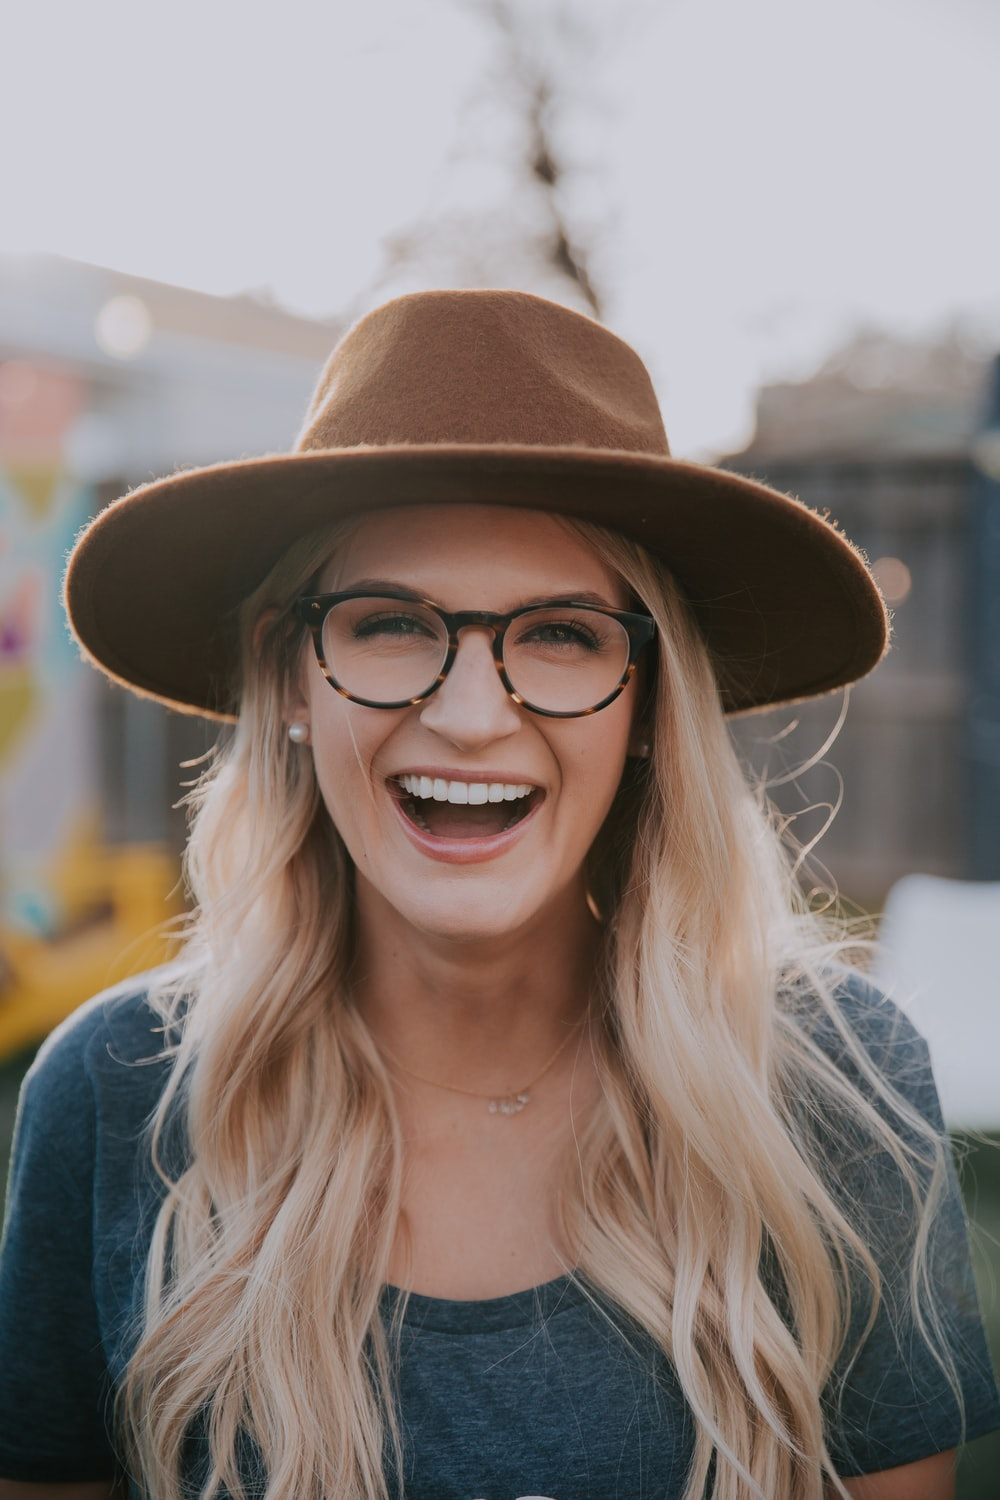 selective focus photography of smiling woman wearing brown hat